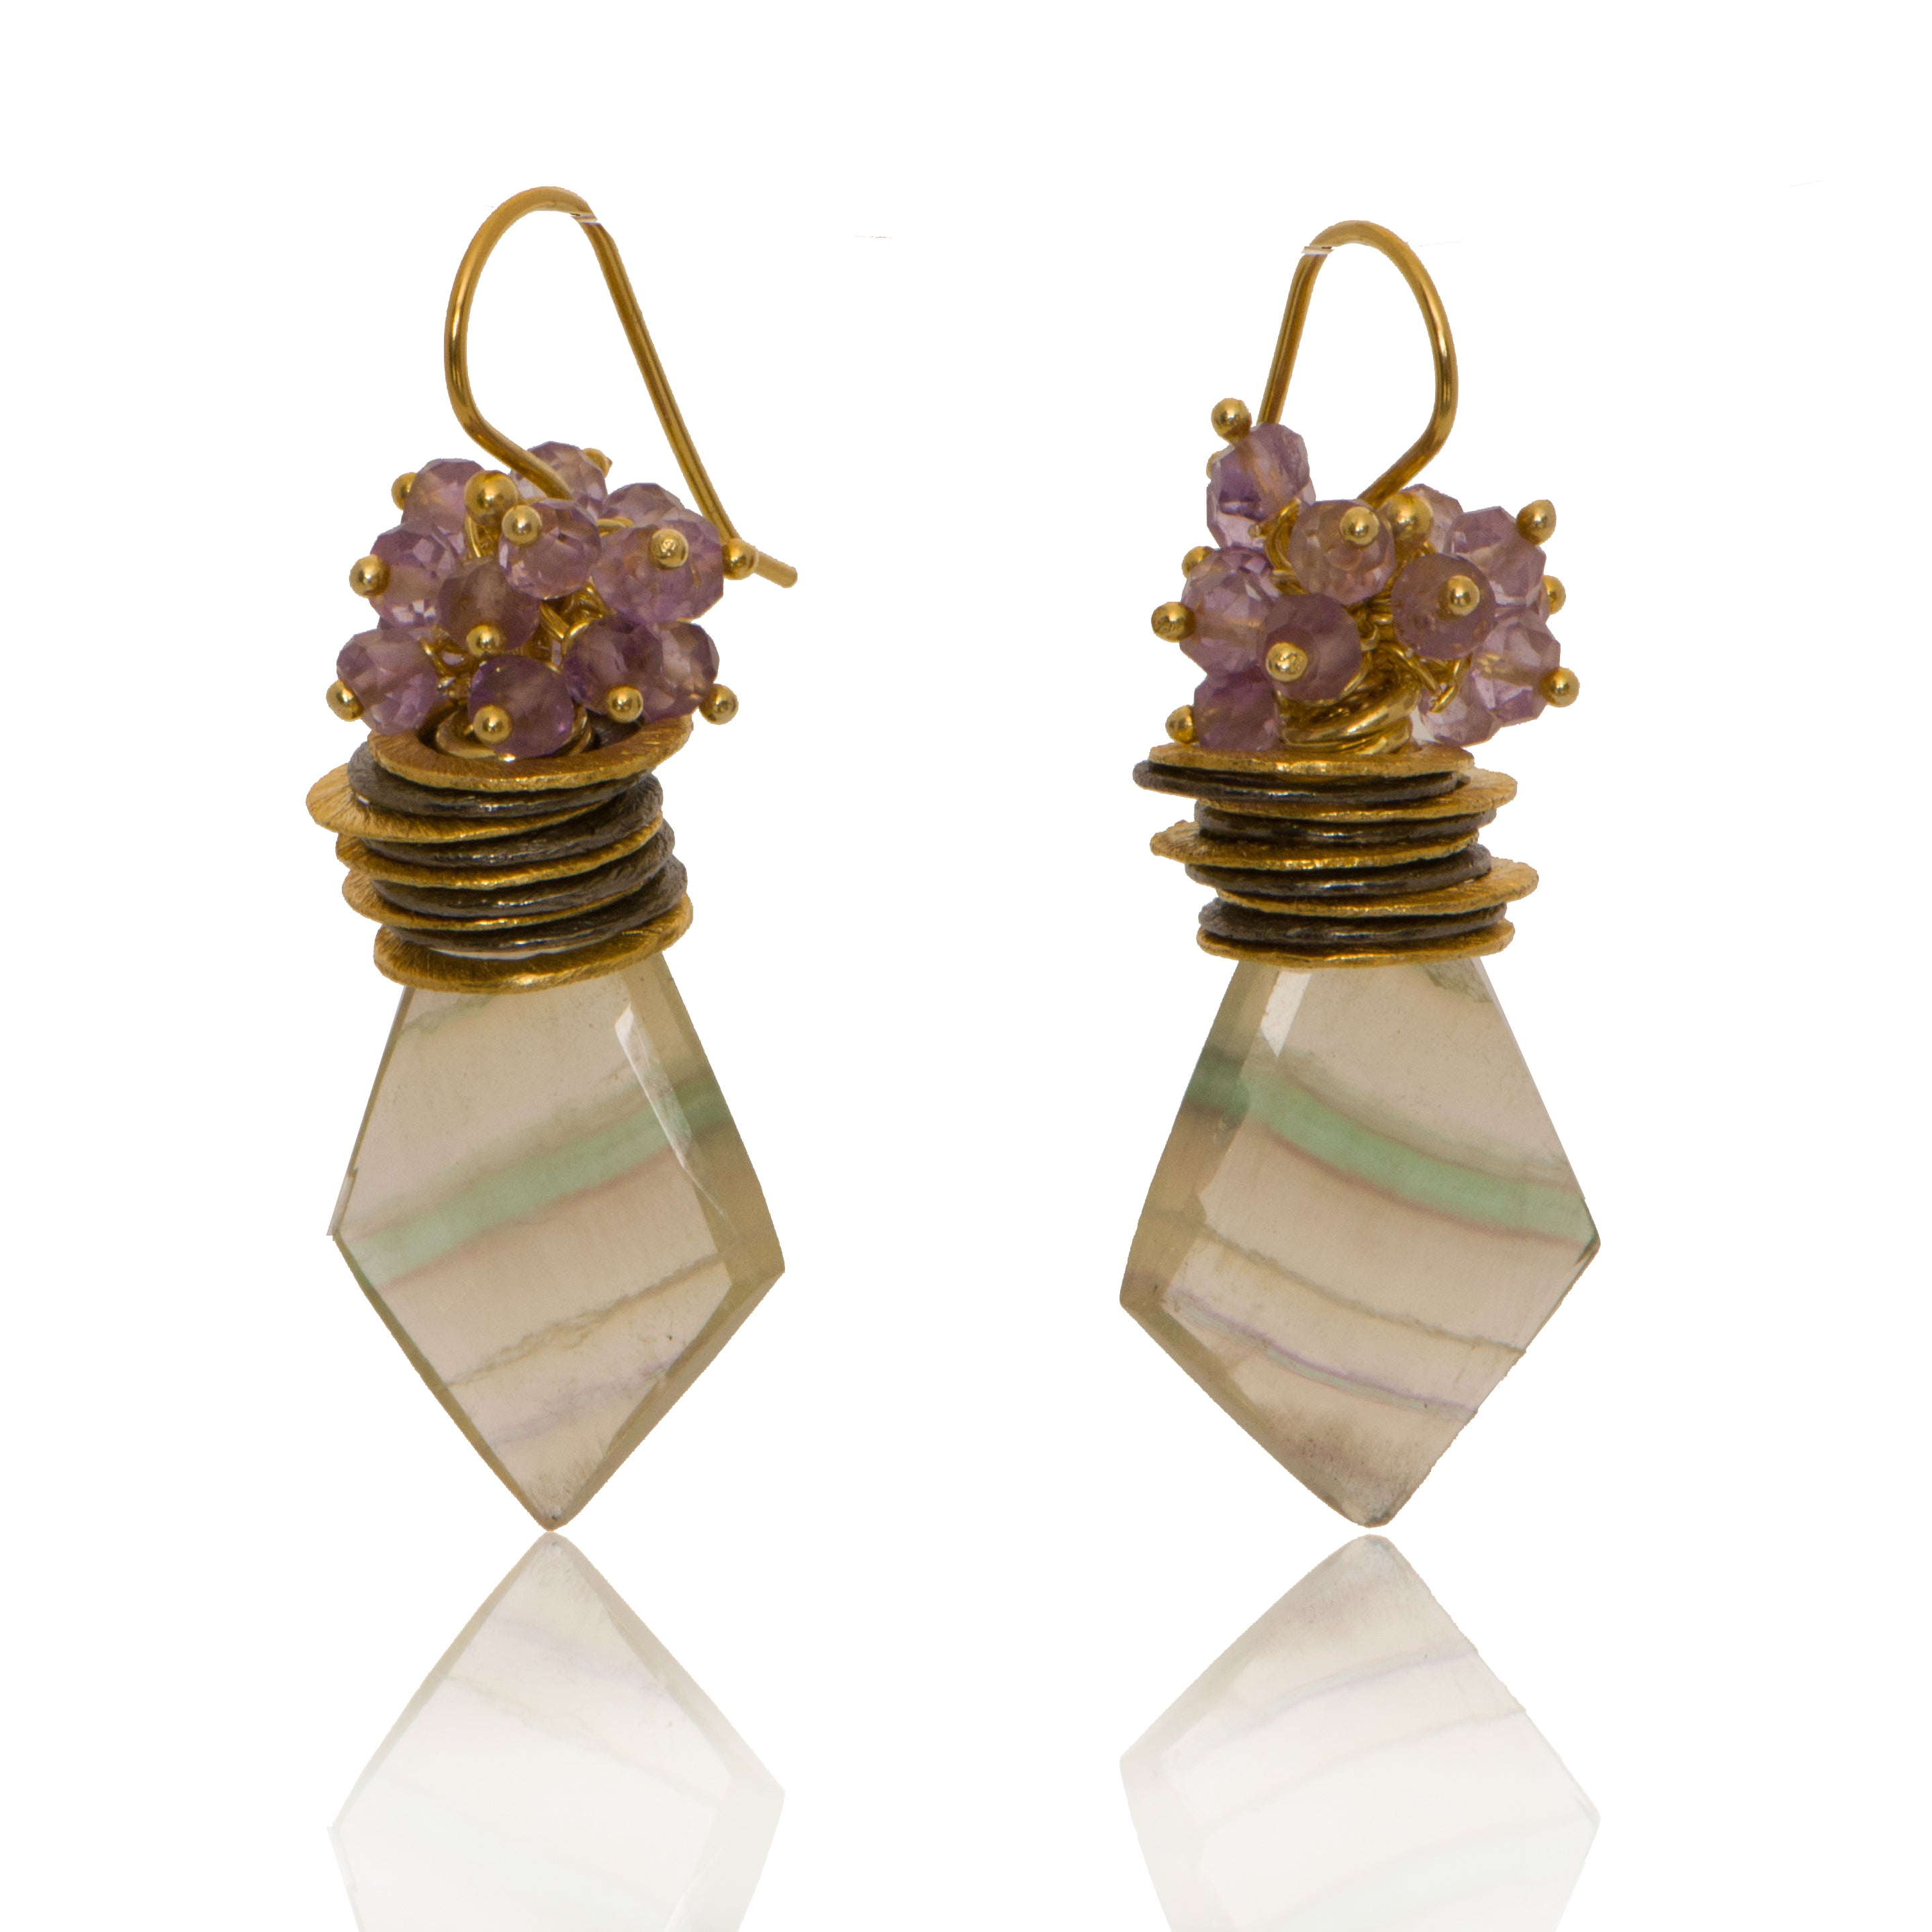 Flourite Kite Queen Bee Earrings with Amethyst Top